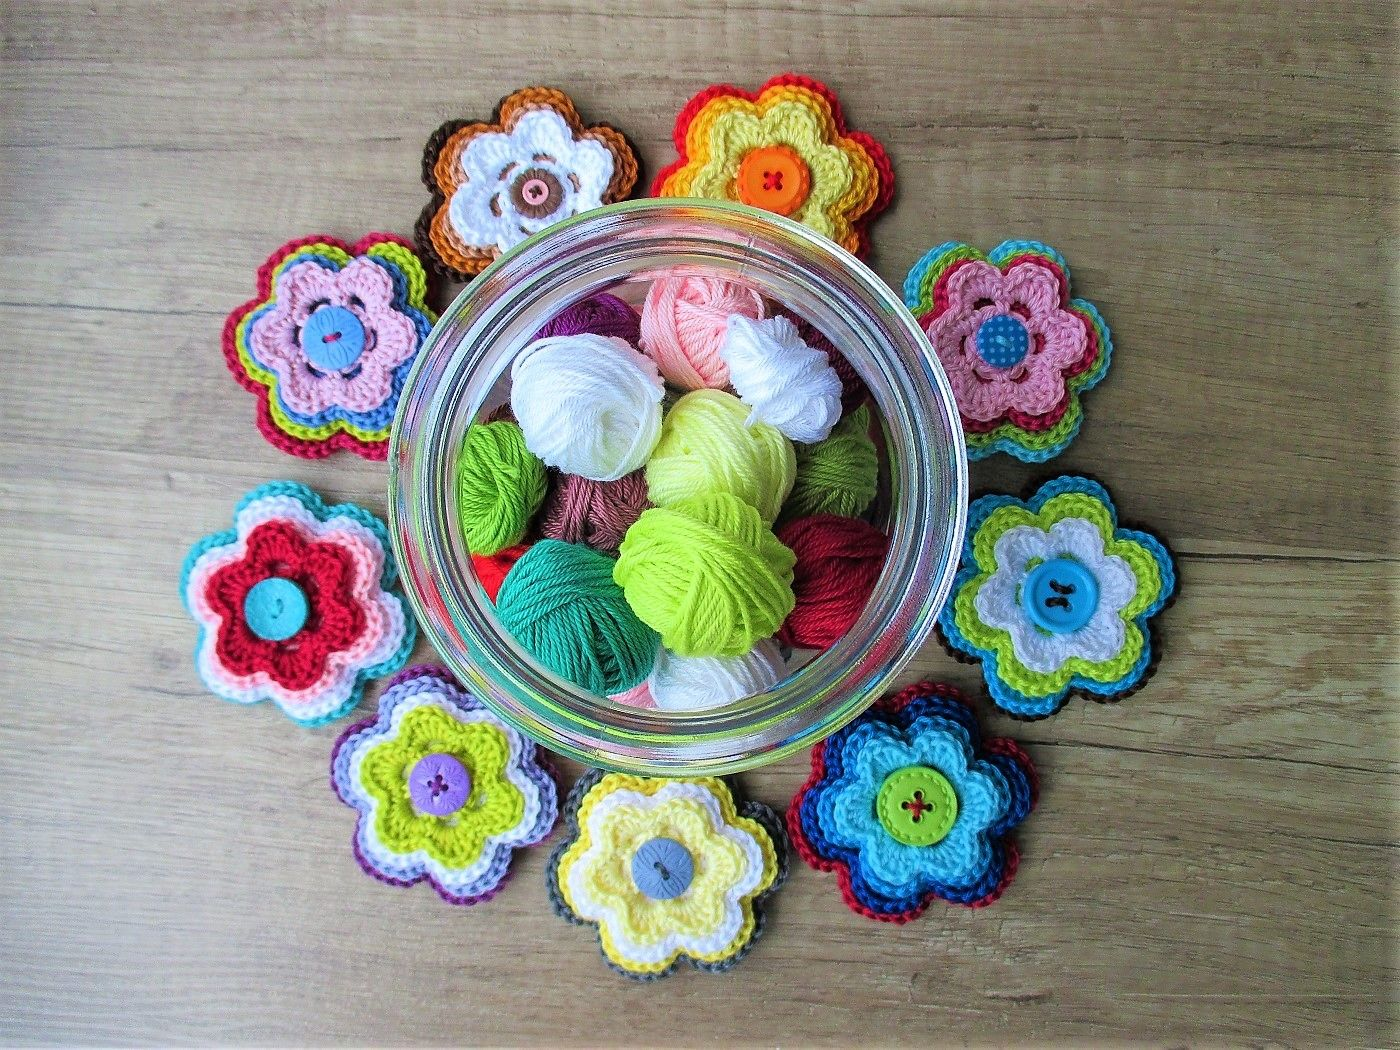 Crochet Flowers with buttons ♥ Pattern by Schneckenkind-Raphaelo ...